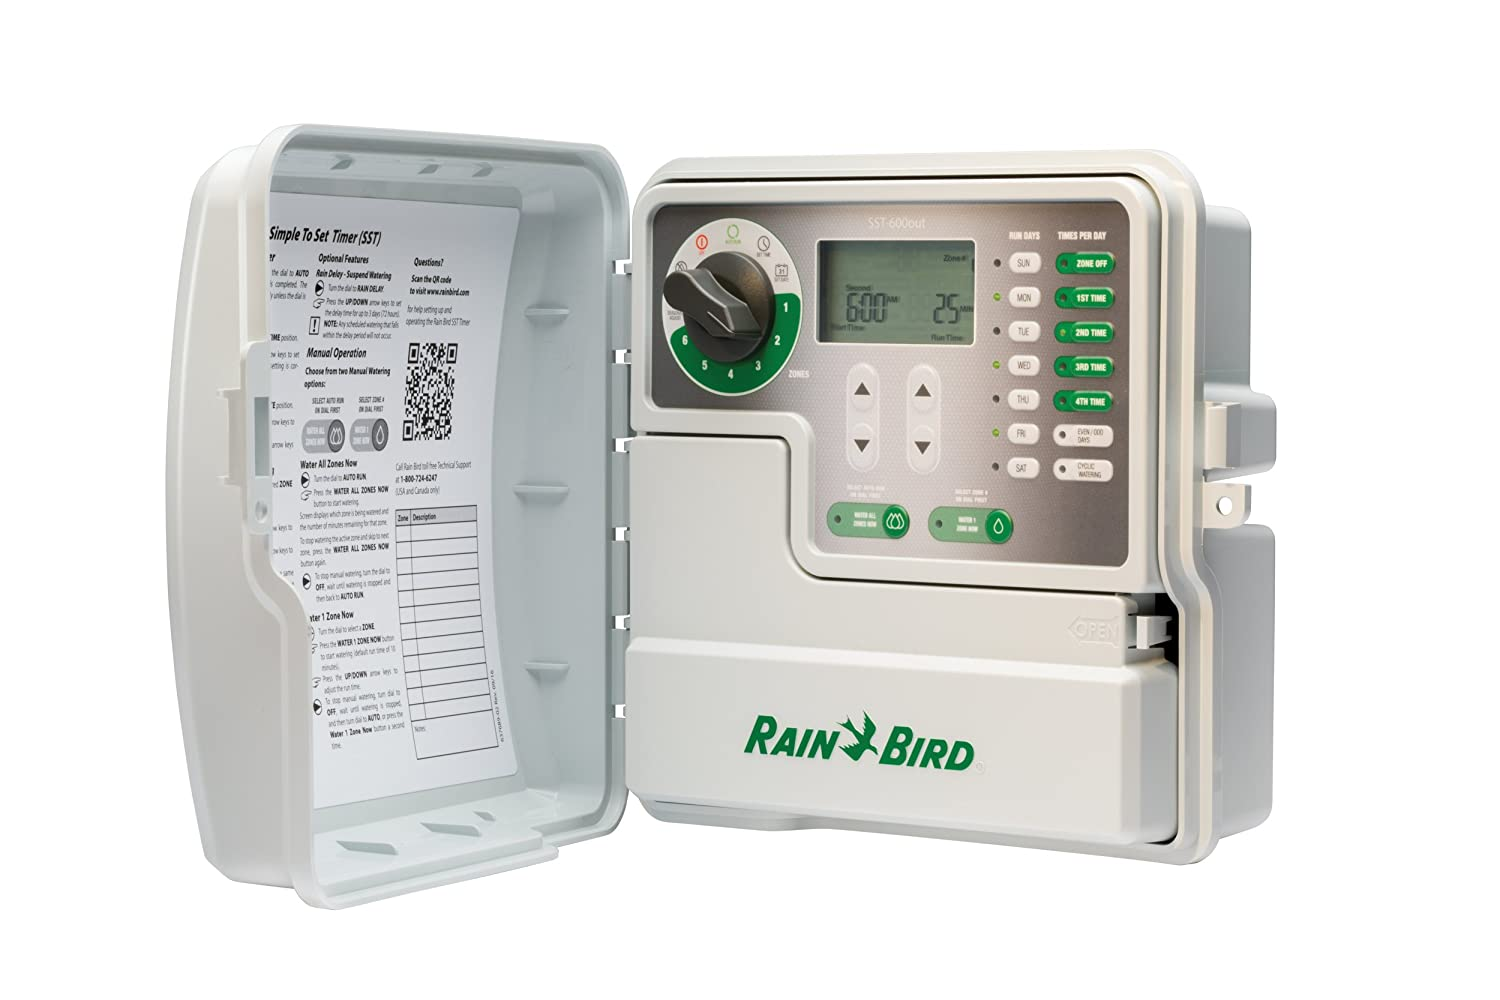 6-Zone//Station Rain Bird SST600IN Simple-to-Set Indoor Sprinkler//Irrigation System Timer//Controller This New//Improved Model Replaces SST600I